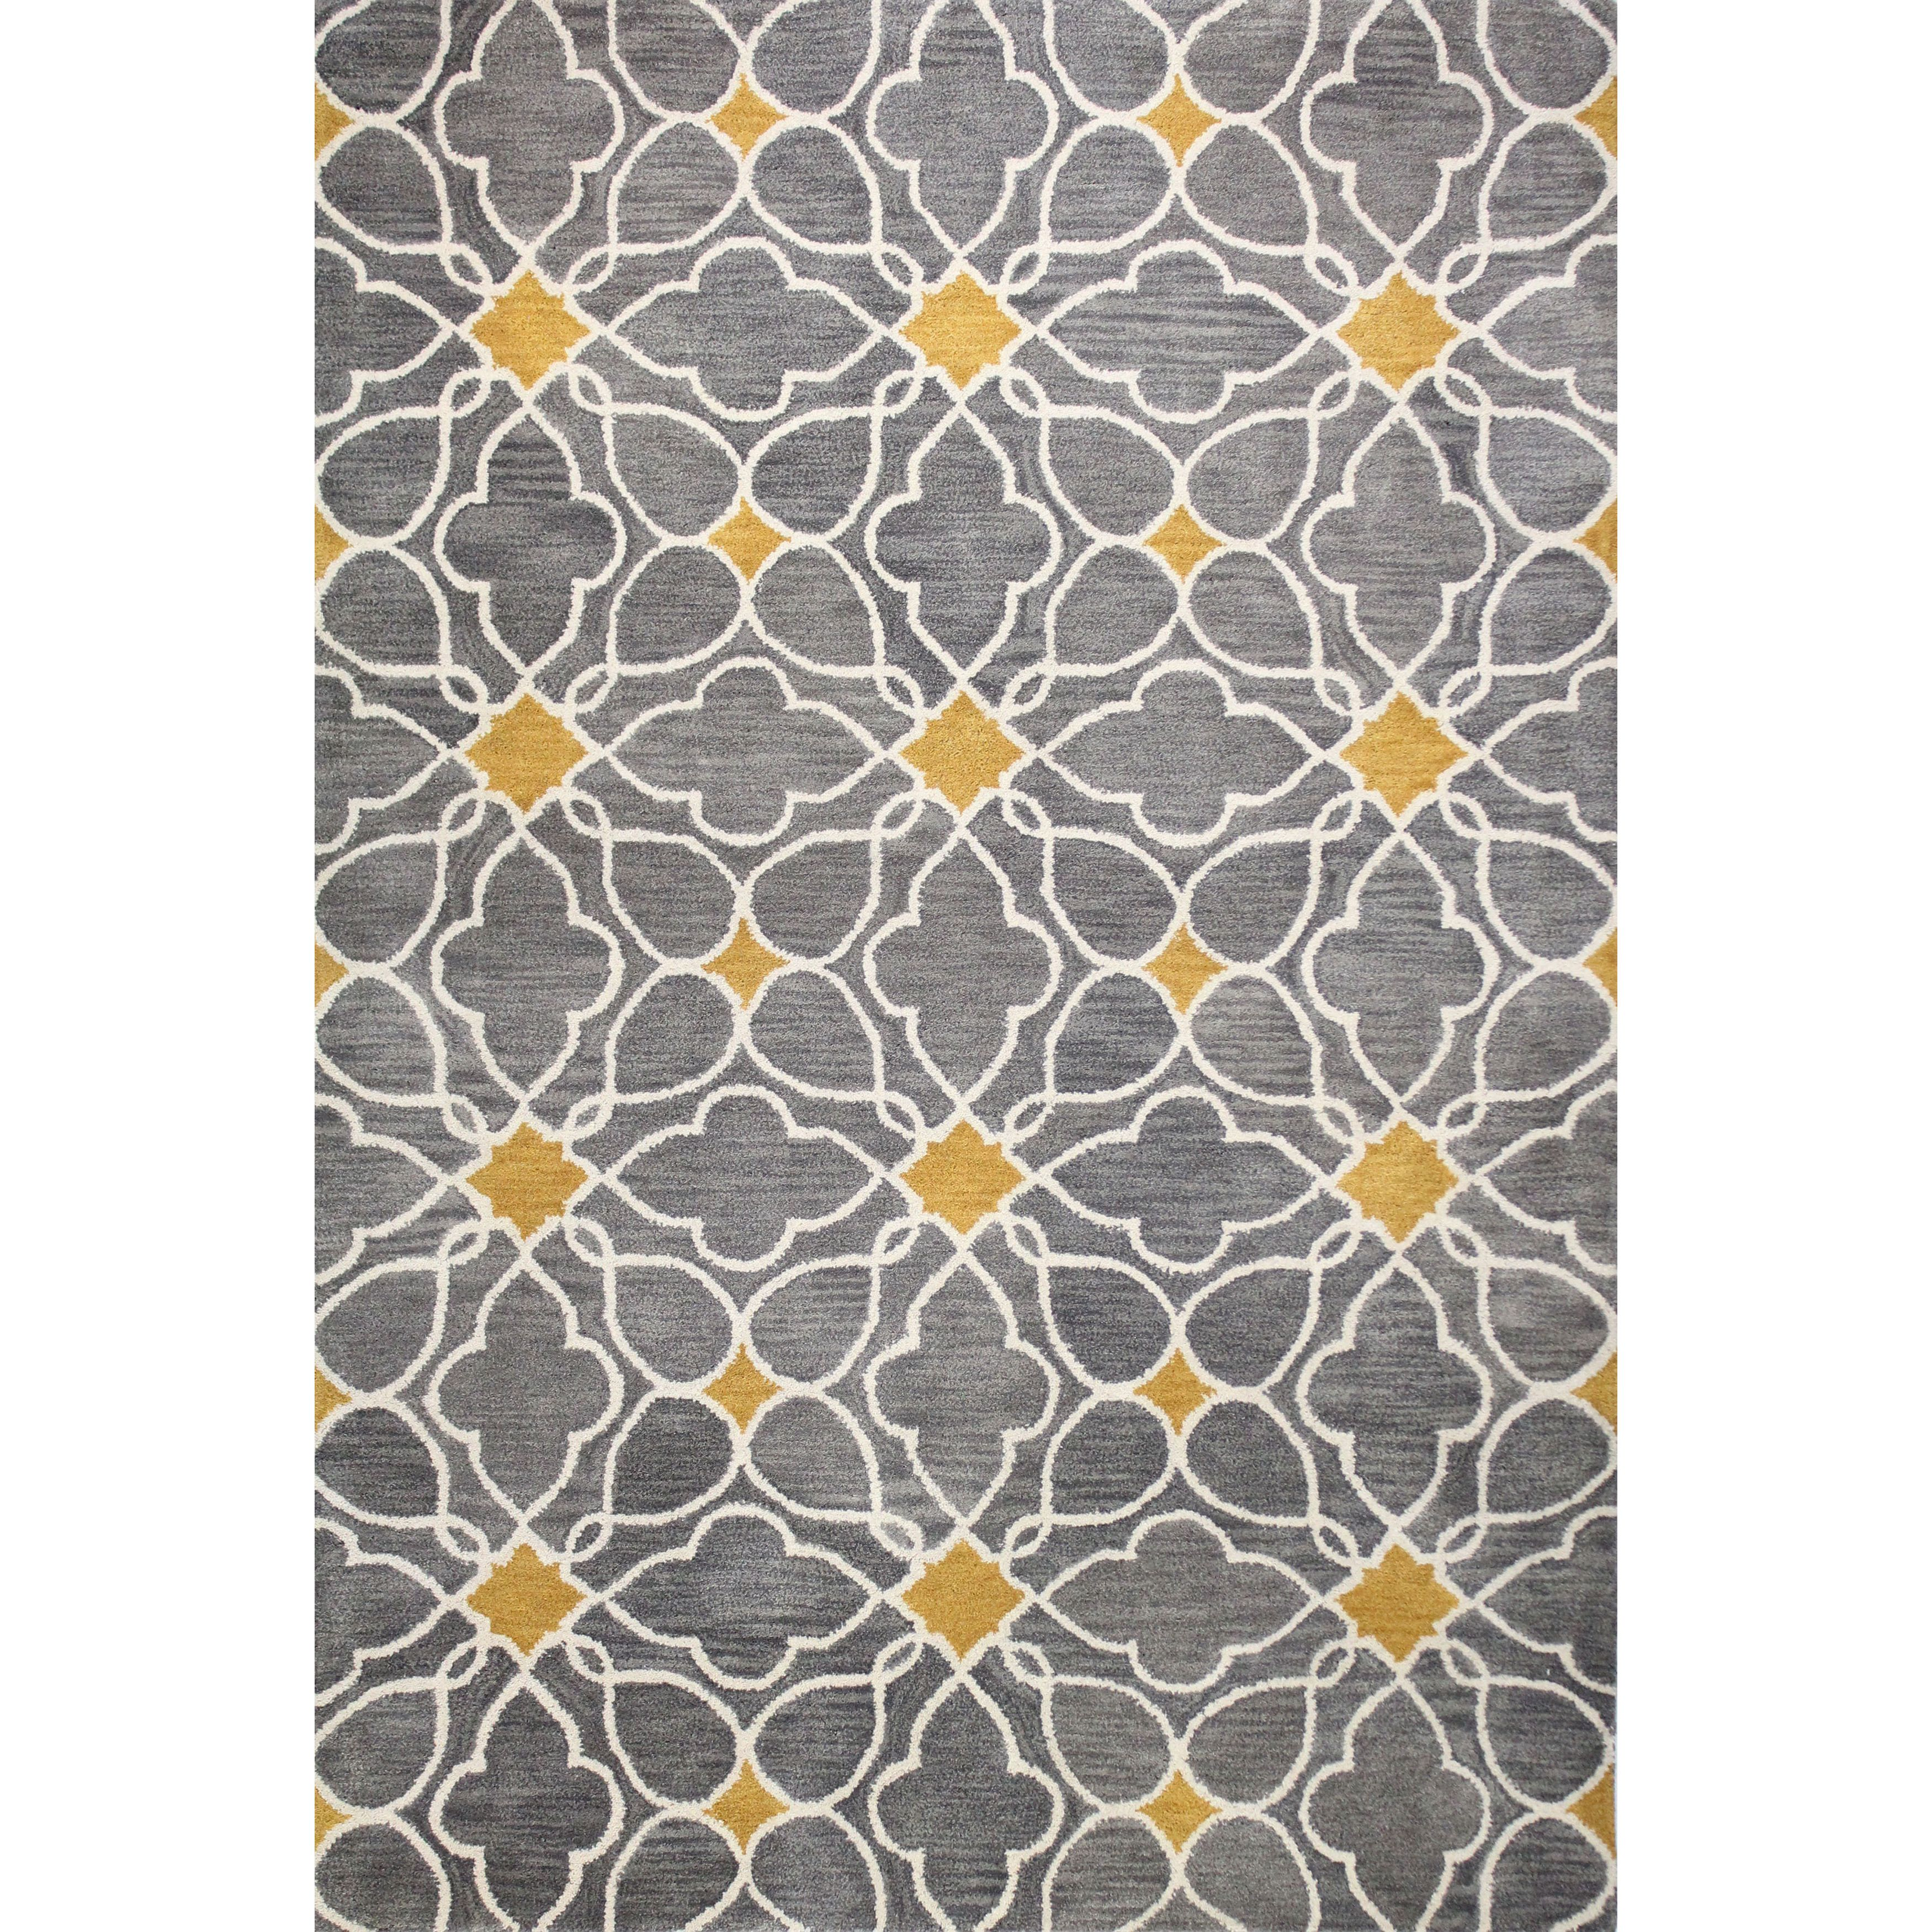 Alfombras Contemporaneas Kiara Tufted Wool Area Rug Products Pinterest